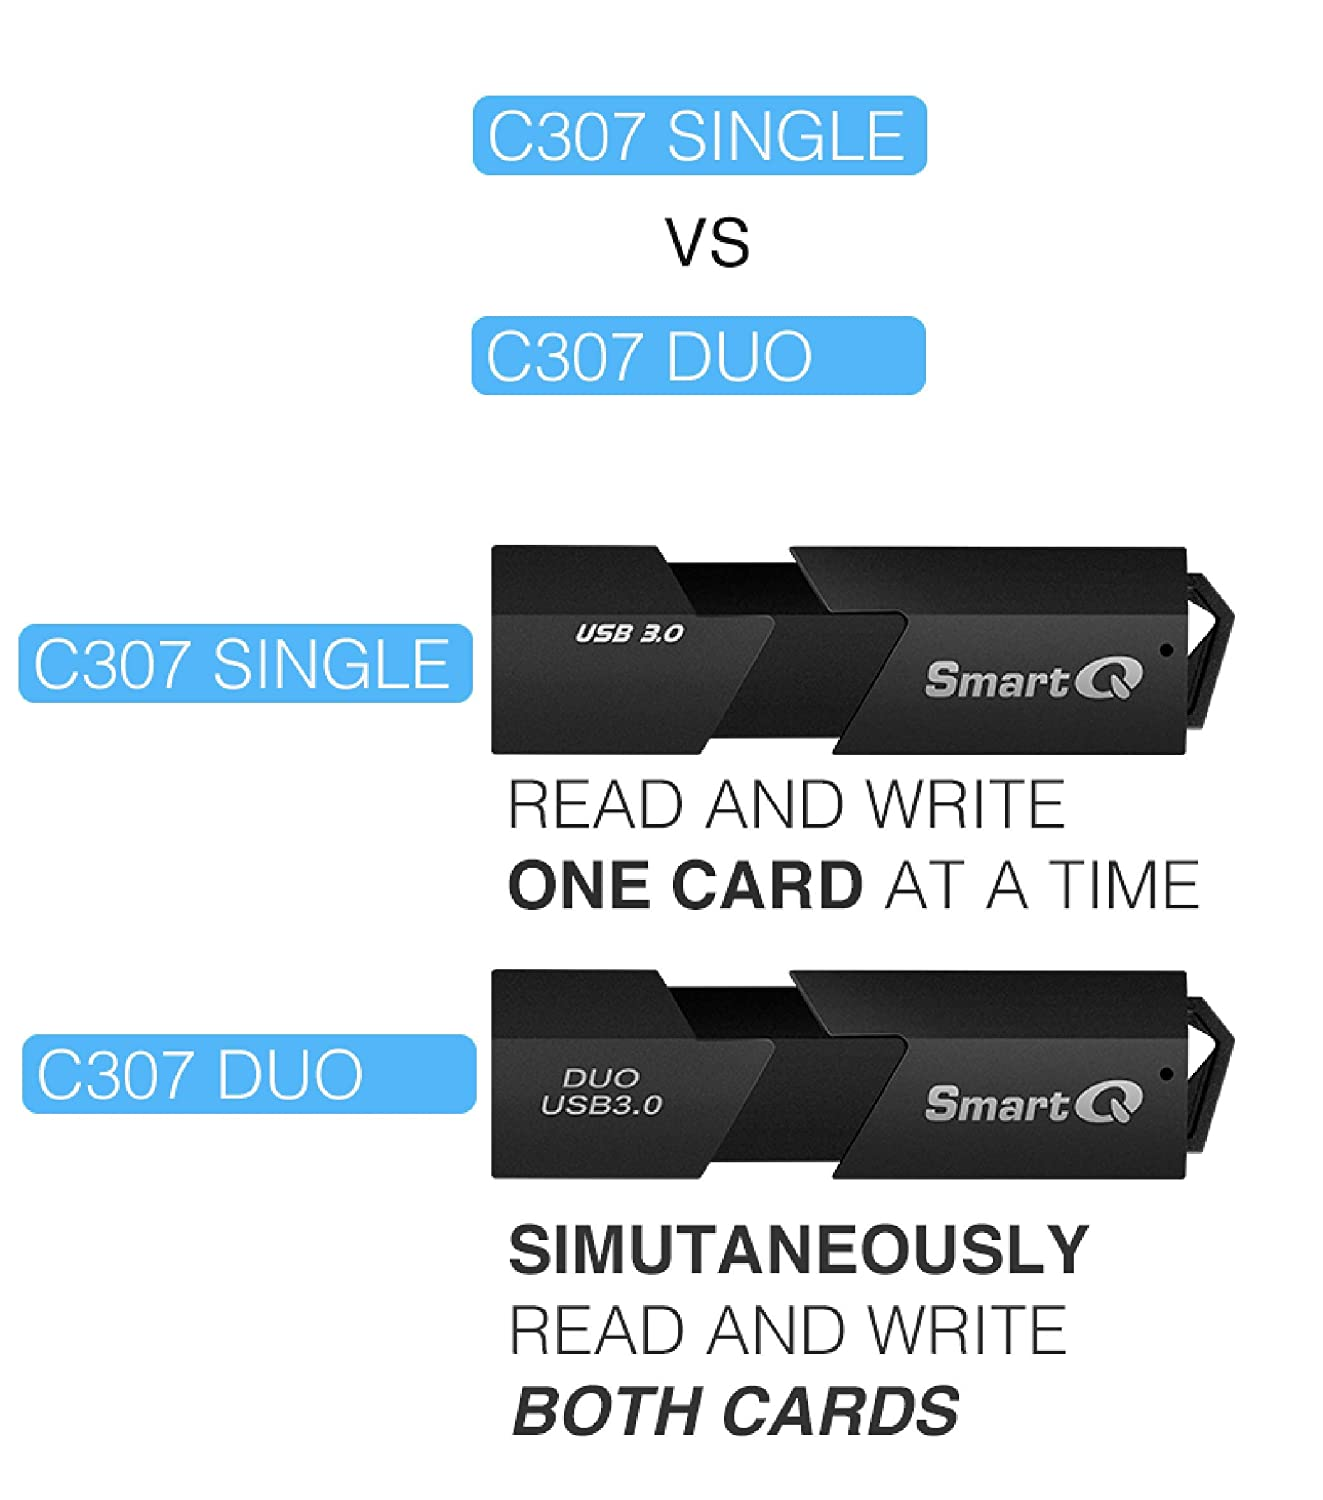 Chrome MMC PC SDXC Windows Duo UHS-I for Mac Micro SDXC Linux Micro SDHC SmartQ C307 DUO SD Card Reader Portable USB 3.0 Flash Memory Card Adapter Hub for SD Switch Laptop SDHC Micro SD